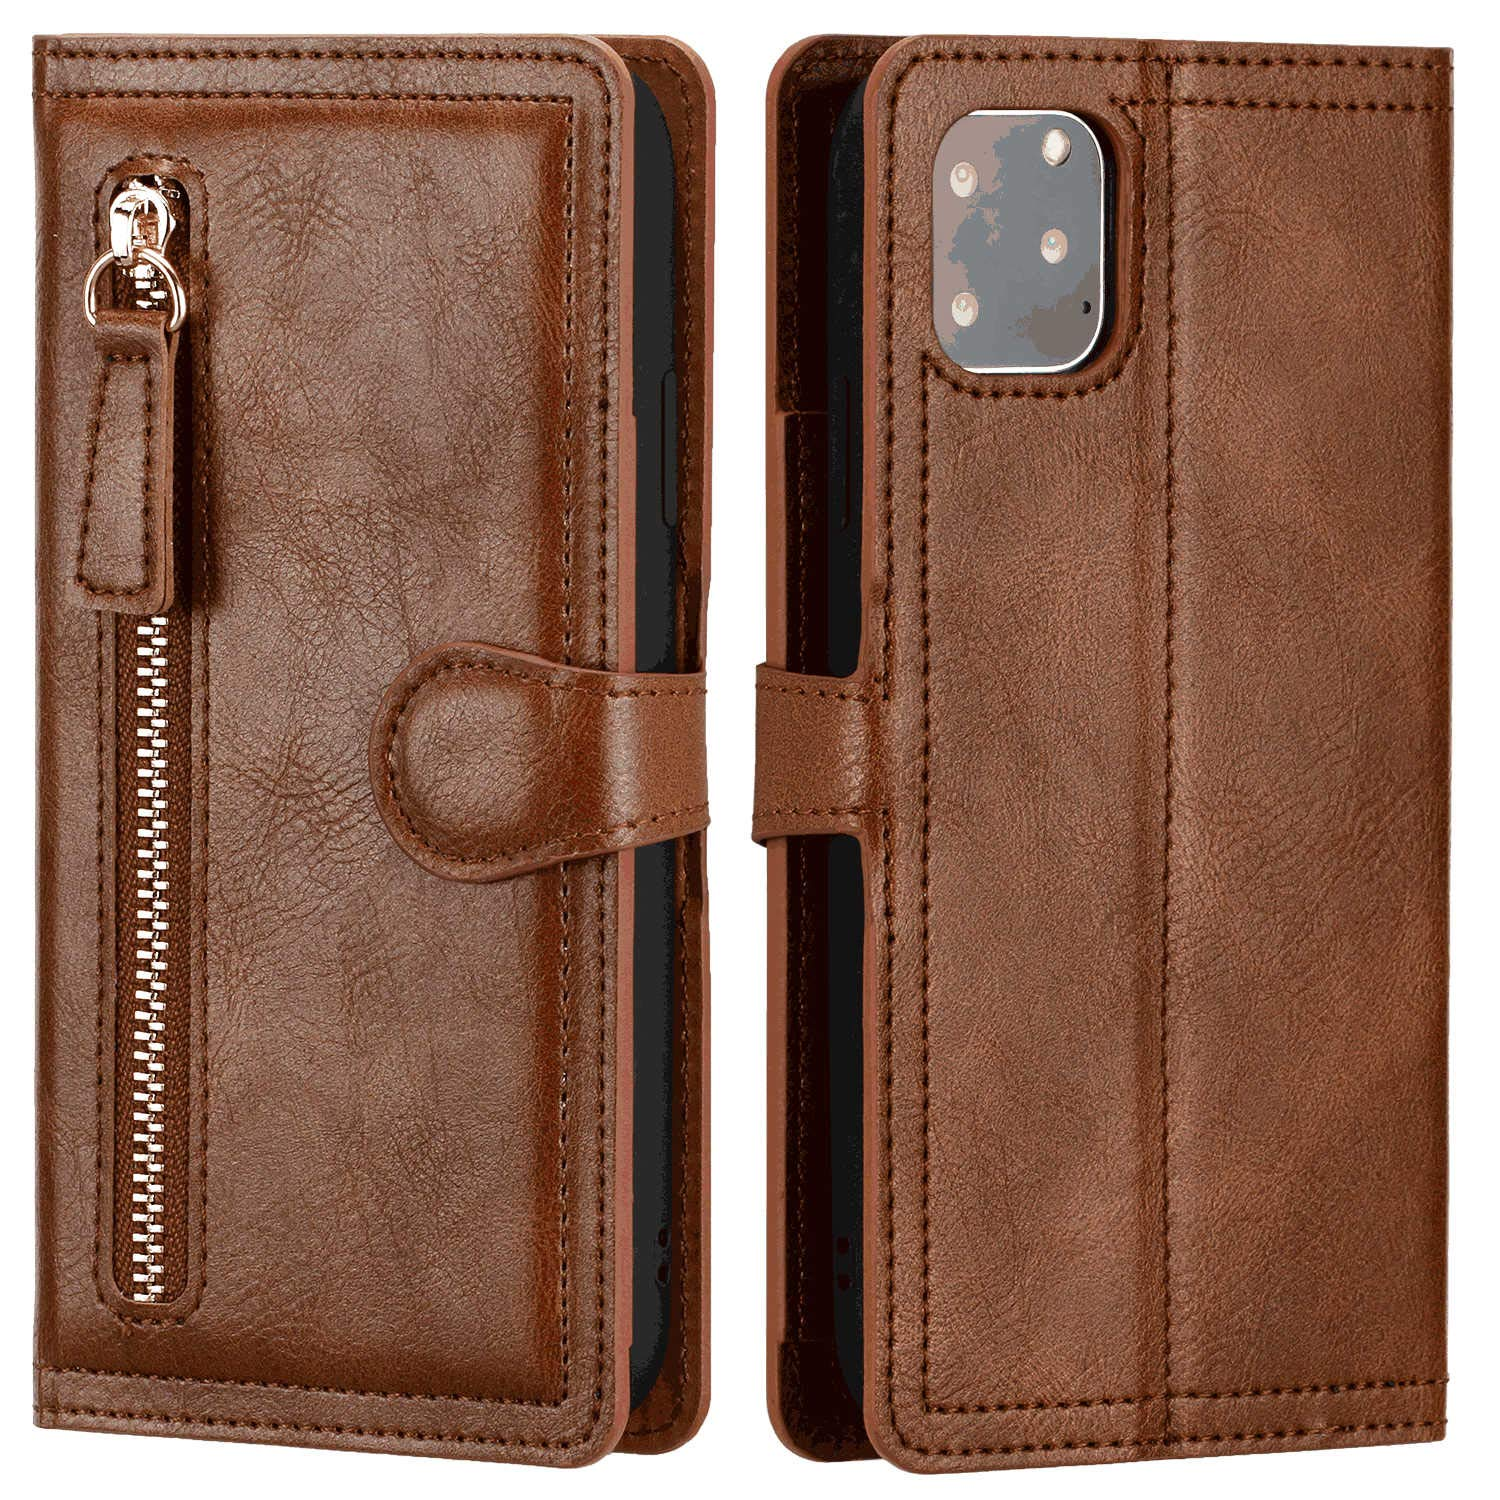 BeyeX iPhone Xs Flip Case Leather Cover Extra-Shockproof Business Card Holders Kickstand Mobile Phone case Magnetic Closure Five Card Slot Money Slot Zipper Retro Gray